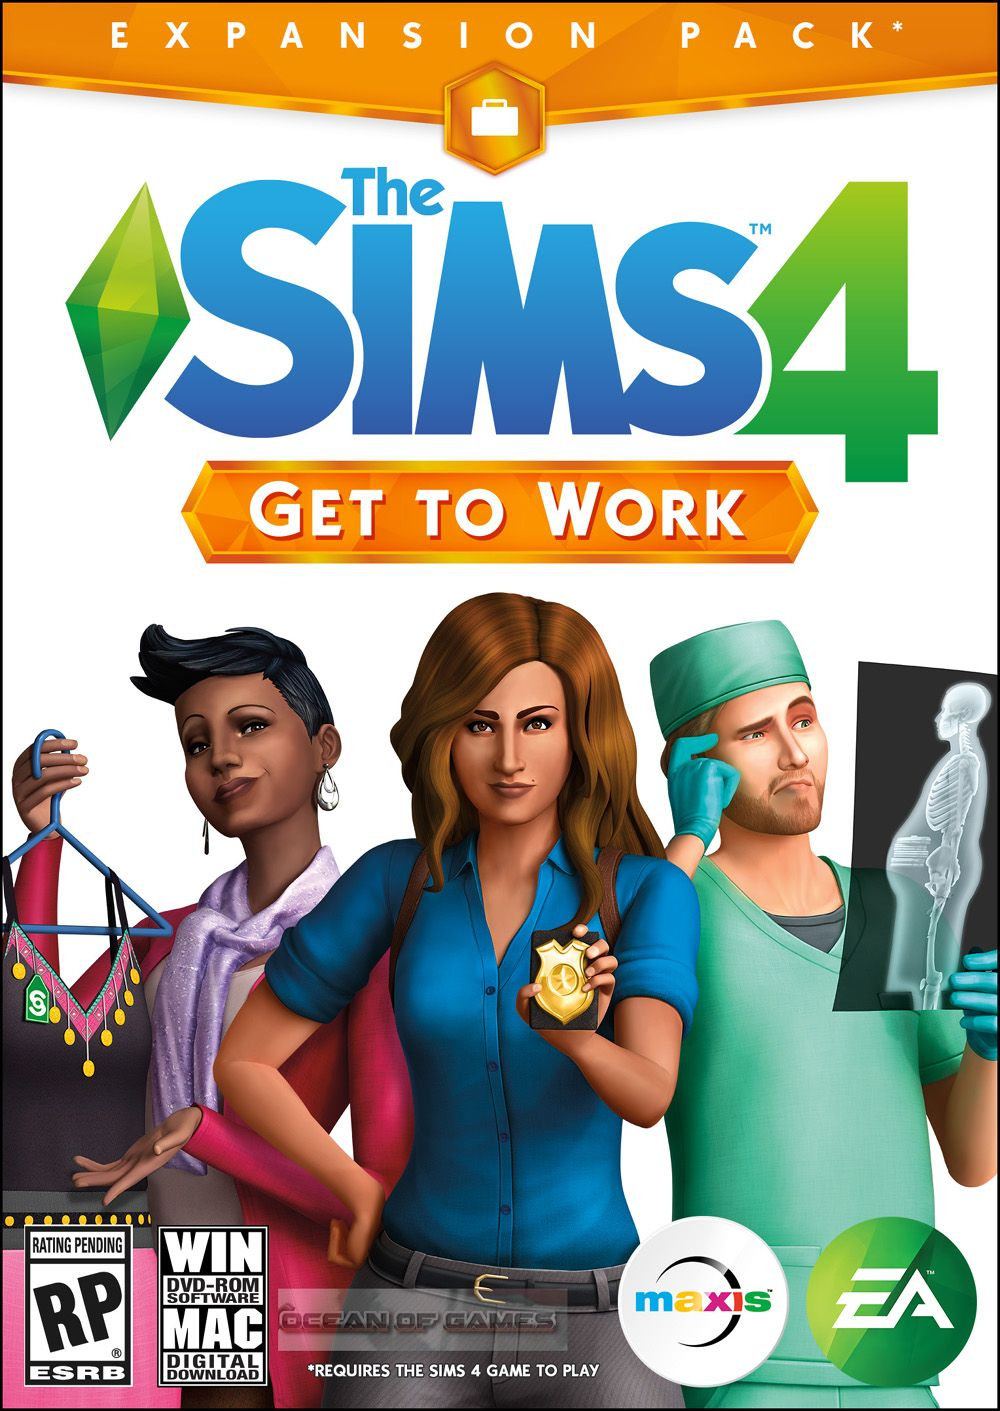 The Sims 3 Generations Free Download Sims 4 Expansions The Sims